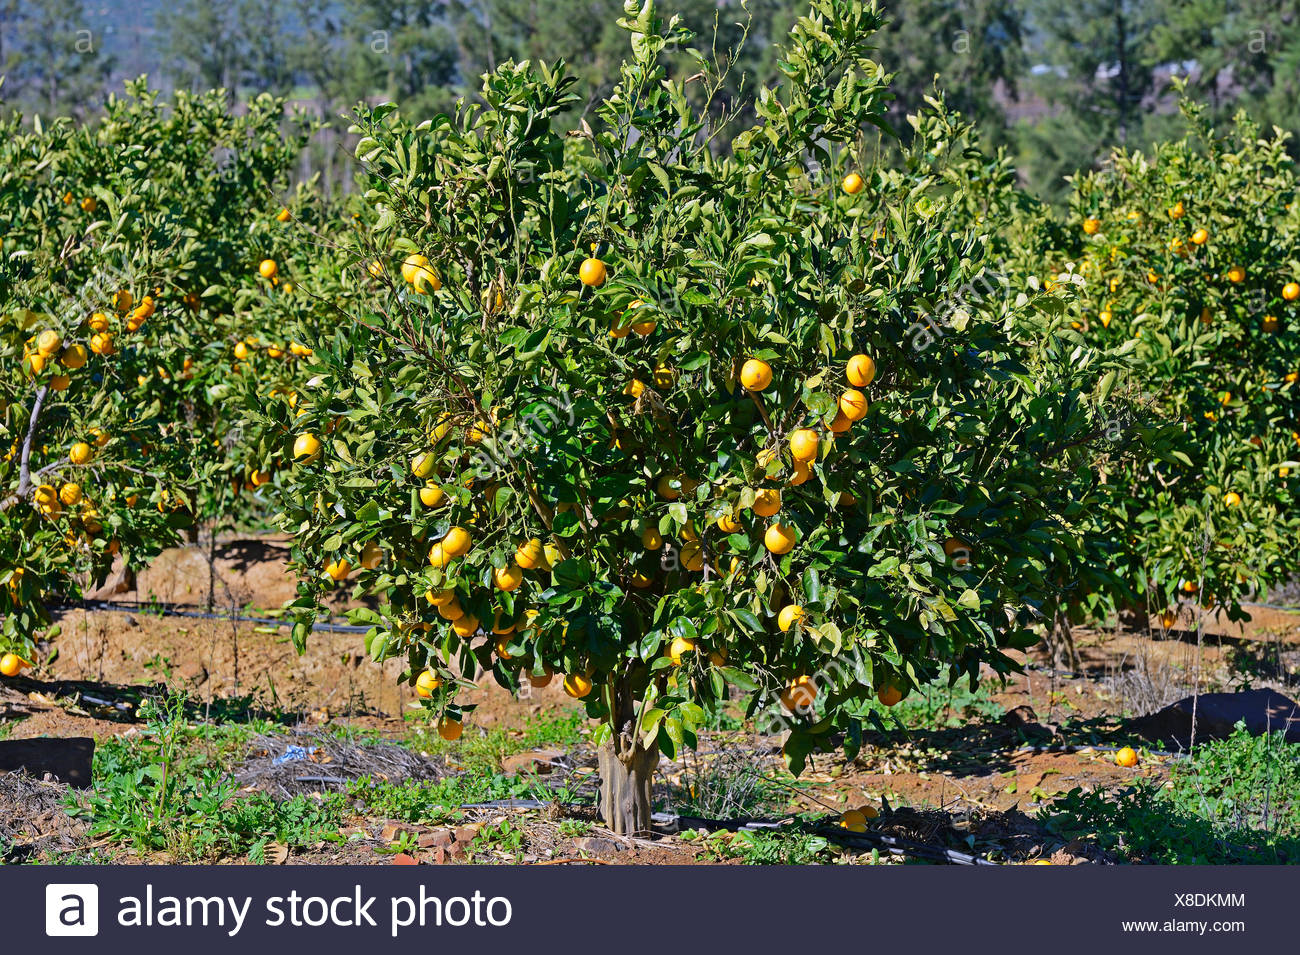 Oranges on trees in a plantation, near Clanwilliam, Western Cape, South Africa - Stock Image